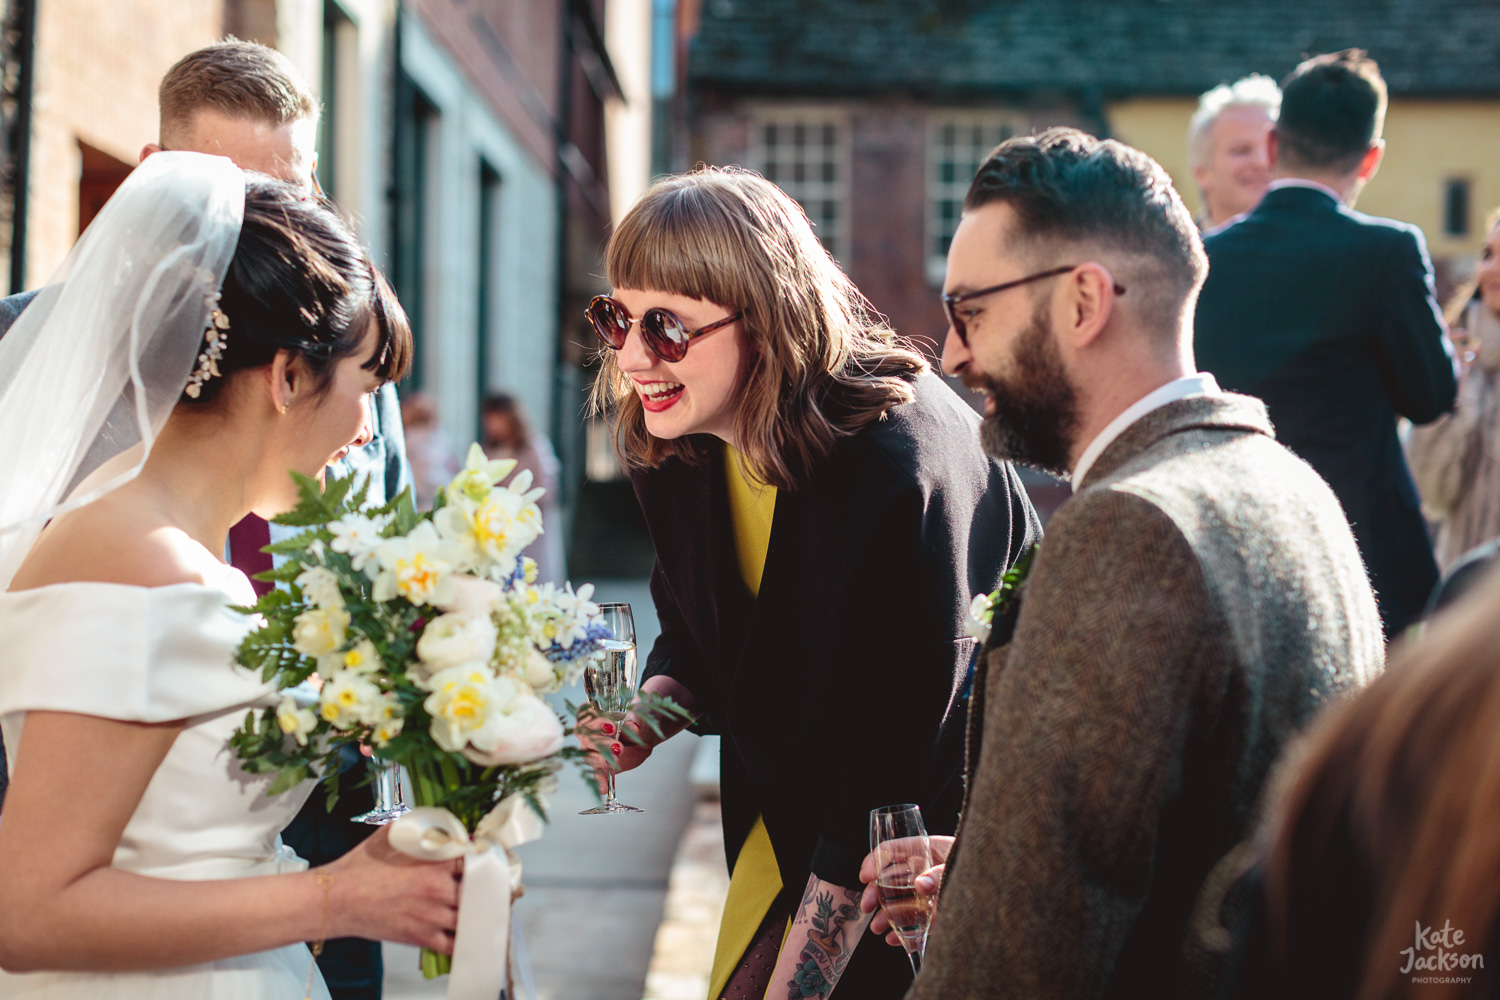 Alternative wedding, natural candids at Blackfriars Priory Gloucester